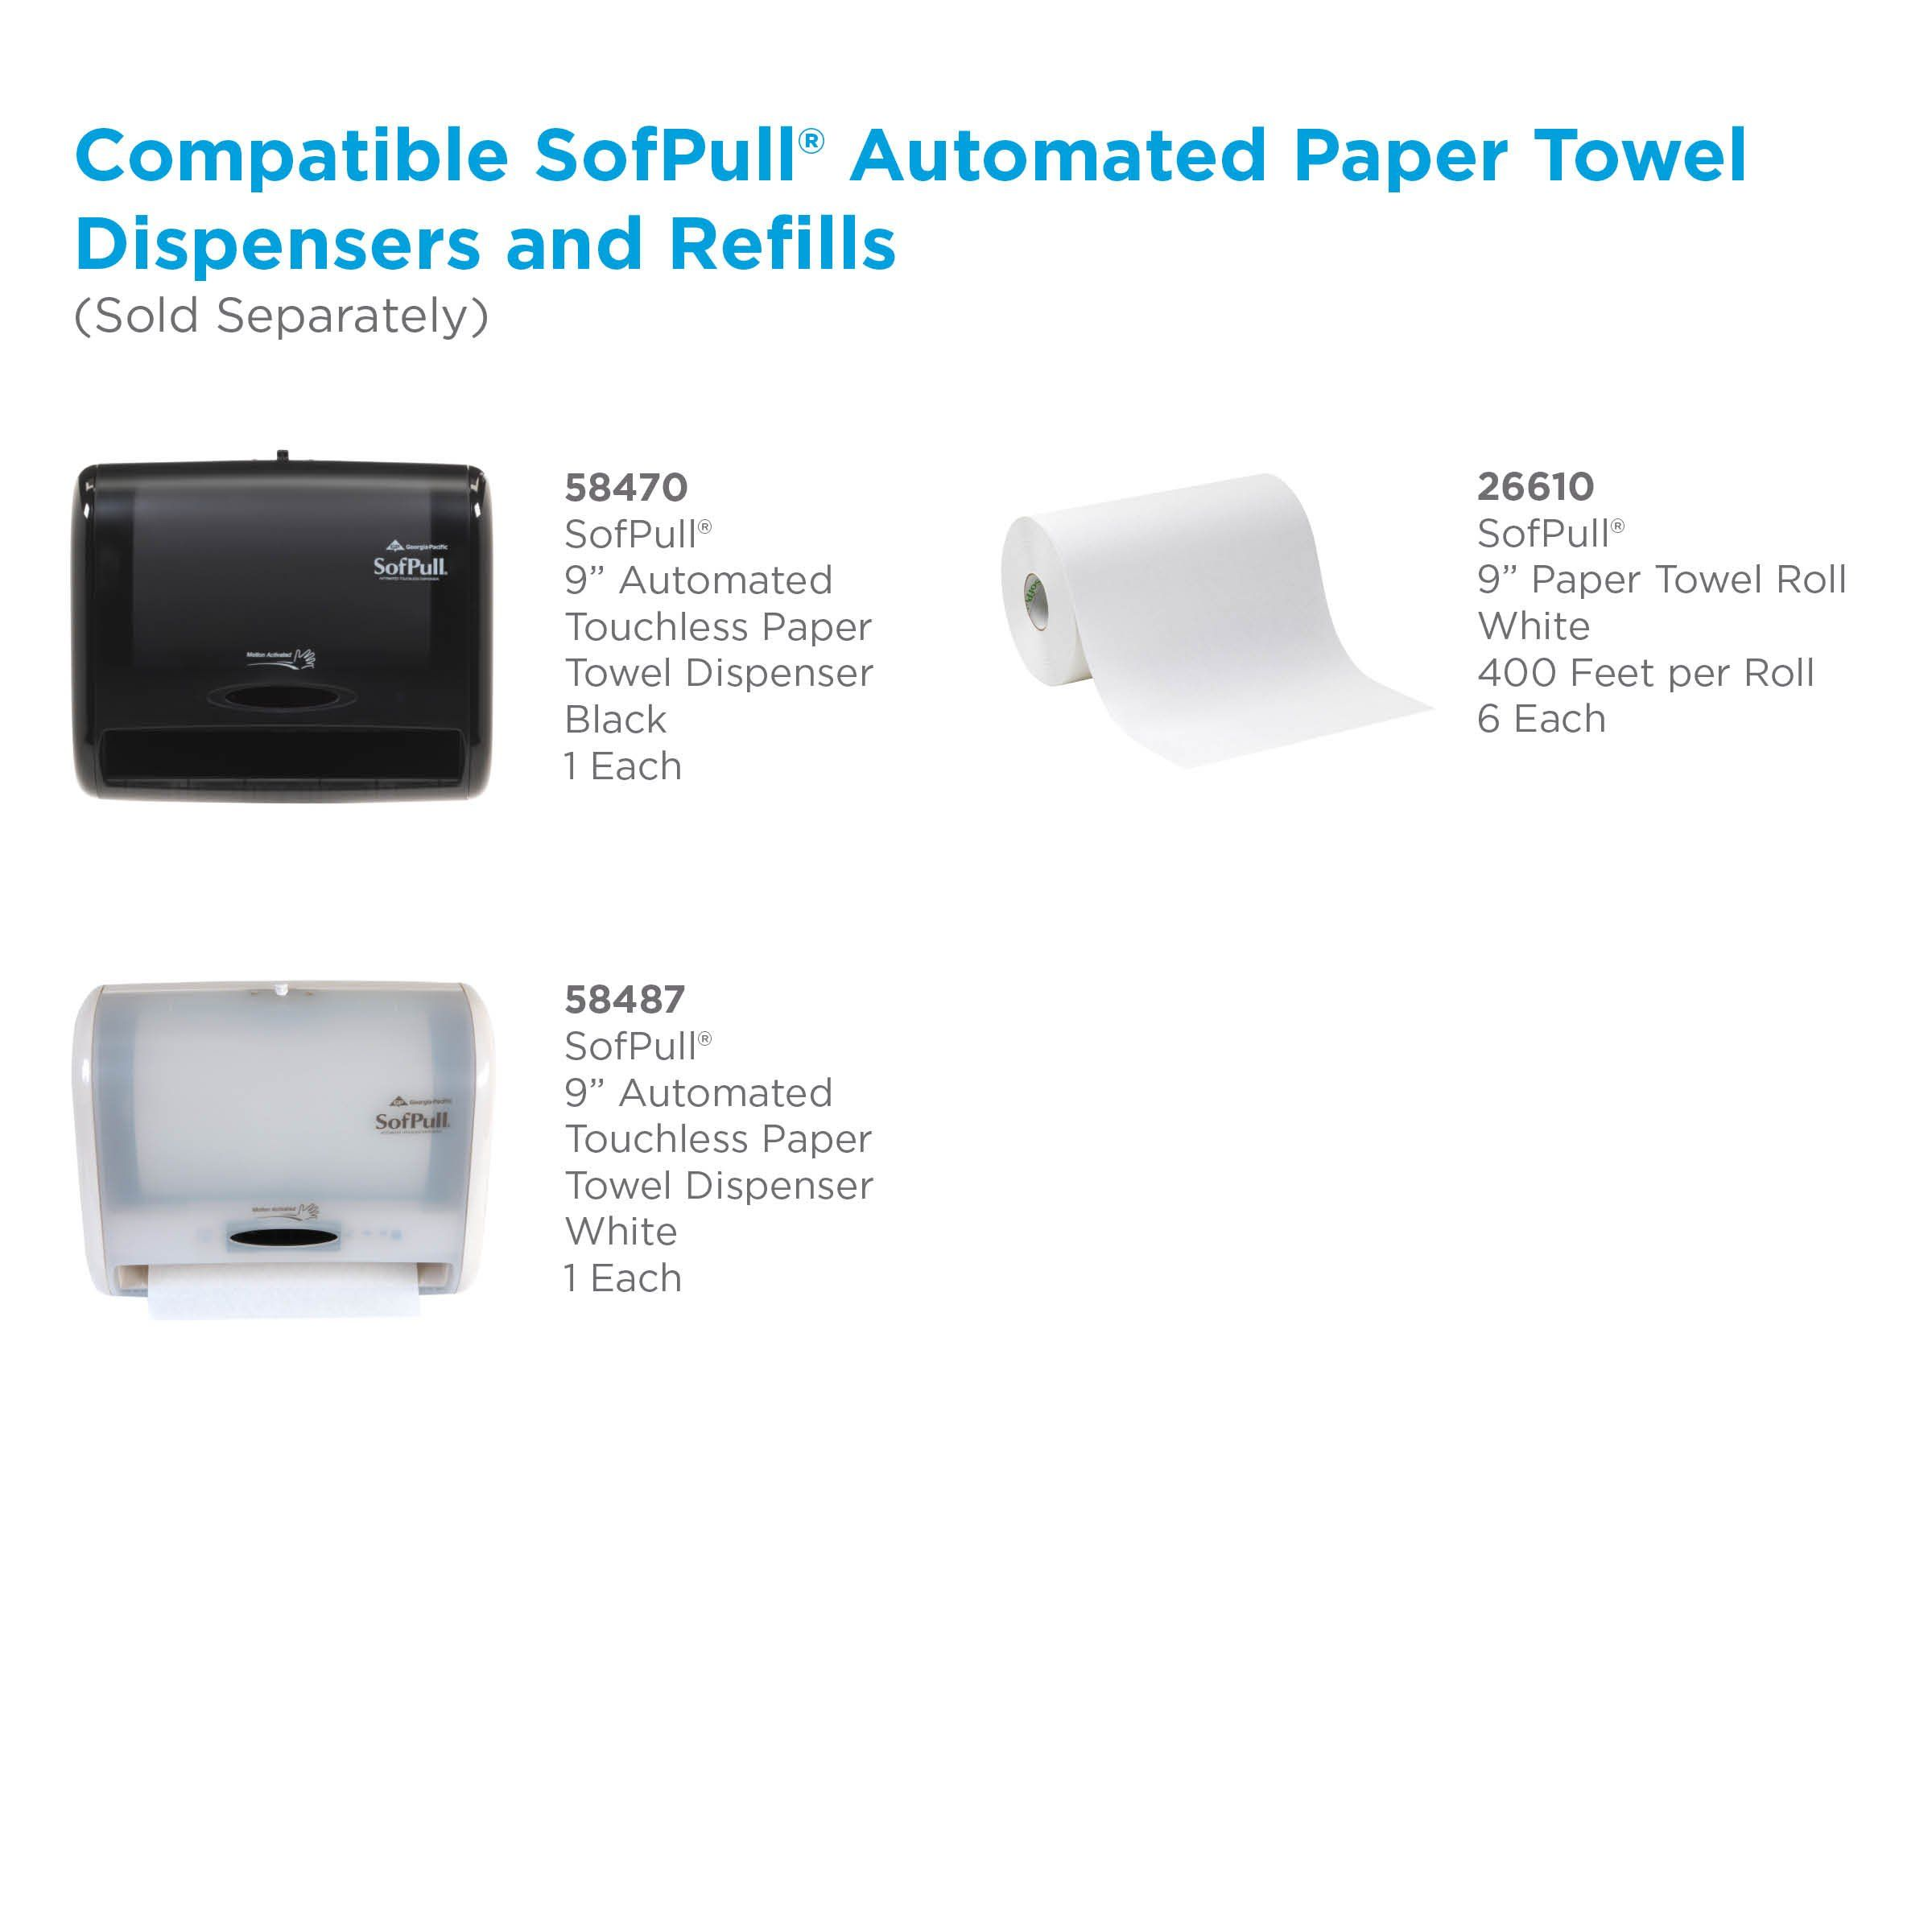 Sofpull 9a Automated Touchless Paper Towel Dispenser By Gp Pro Black 58470 12 800a W X In 2020 Kitchen Storage Organization Paper Towel Dispensers Towel Dispenser